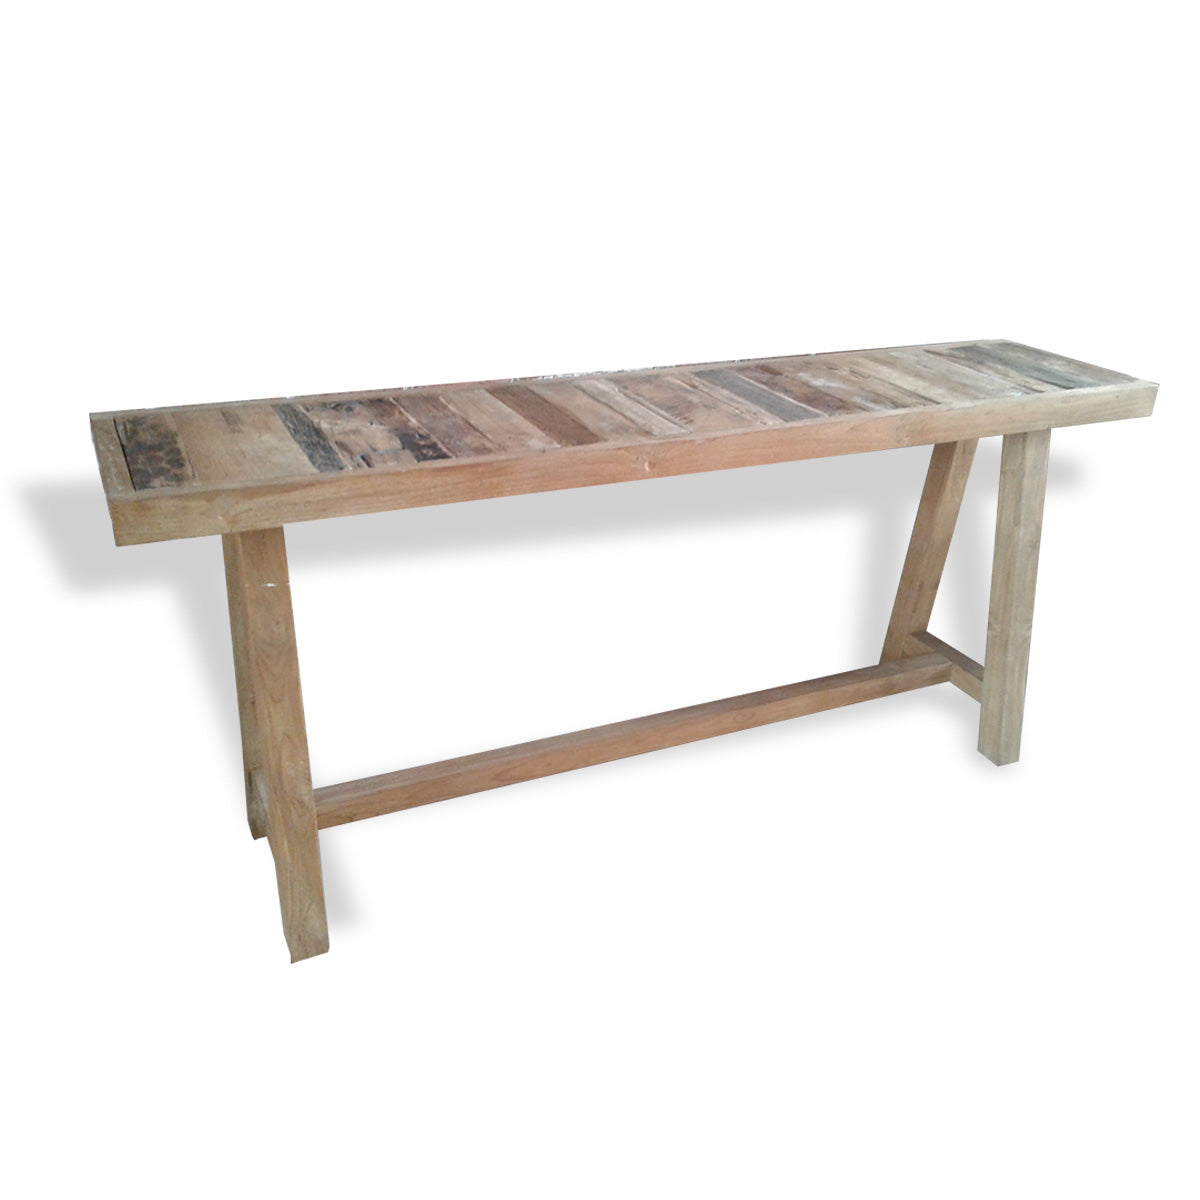 LOF015 RECYCLED WOOD CONSOLE